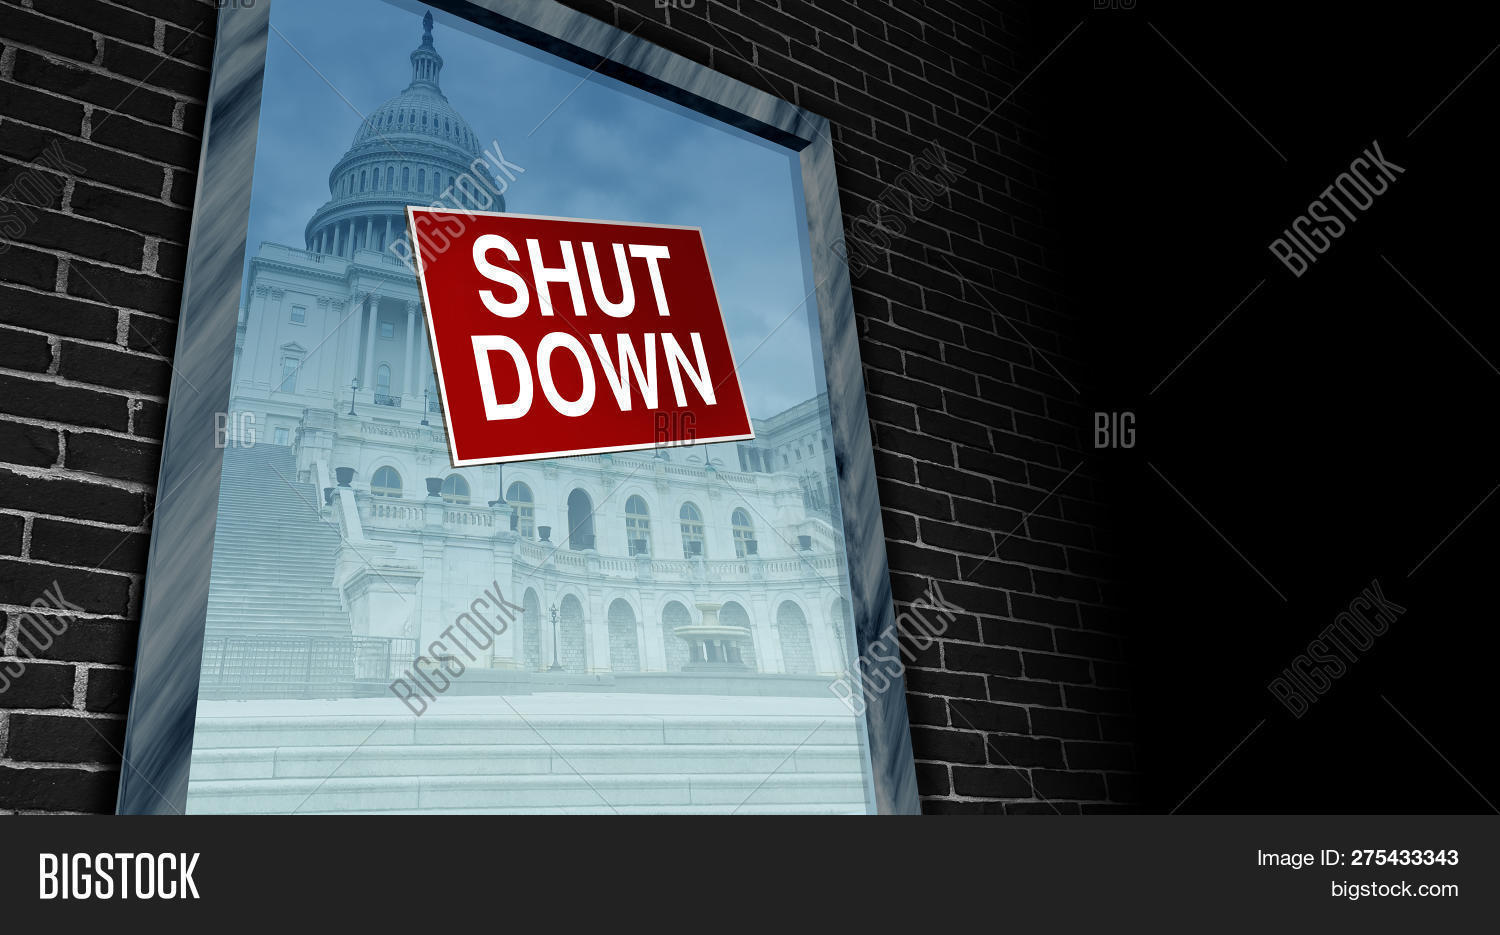 Government shutdown and USA closed and american federal shut down due to spending bill disagreement between the left and the right pas a national finance symbol with 3D illustration style.